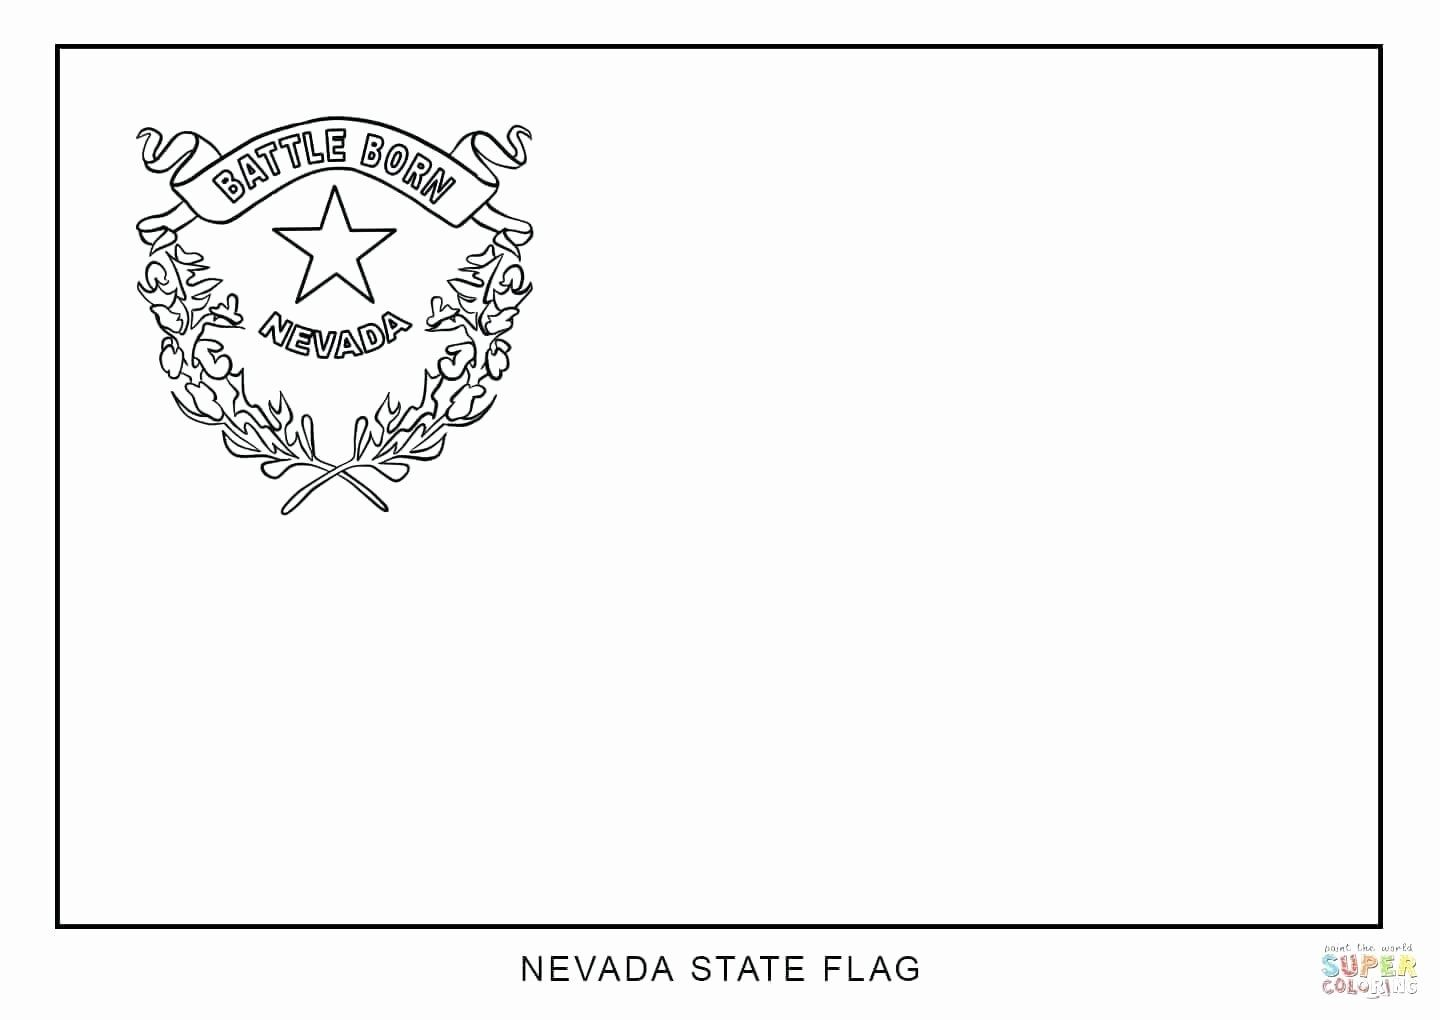 State Flags Coloring Pages Di 2020 Nevada